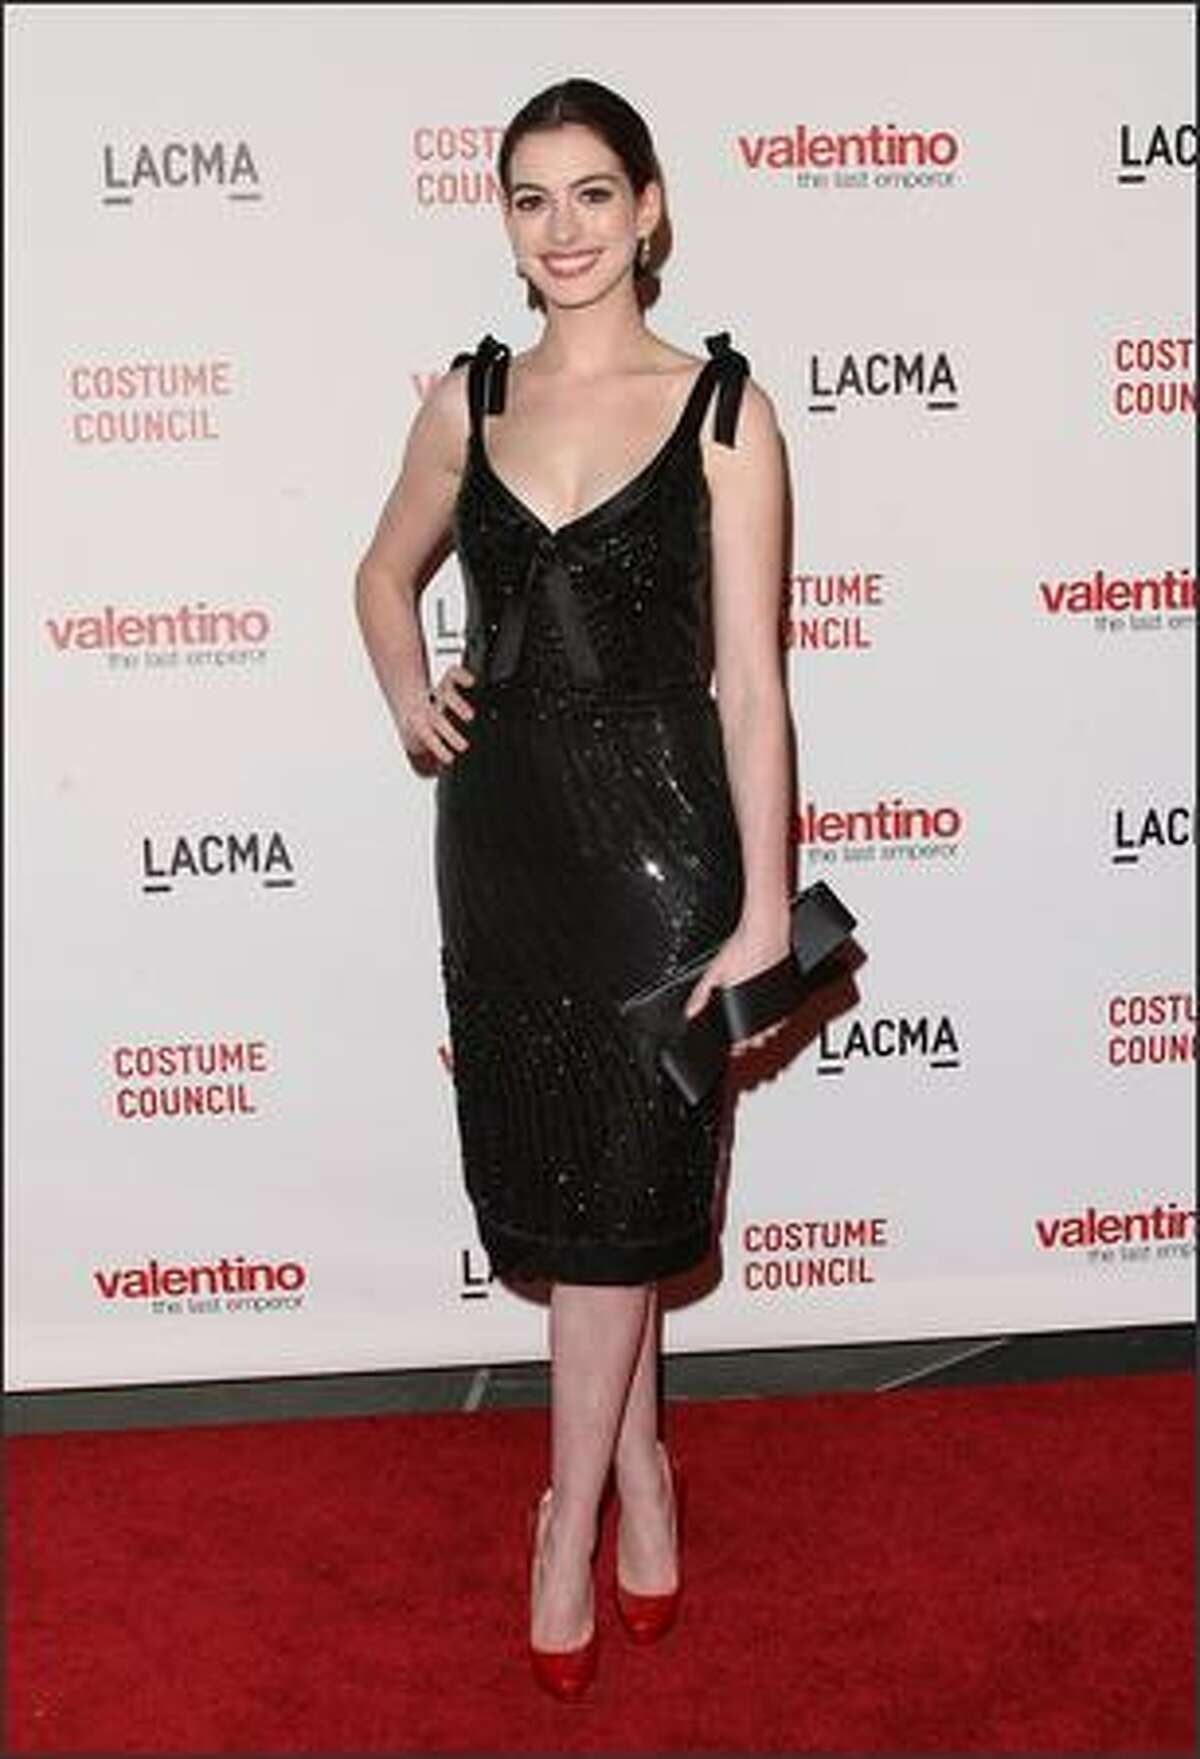 Actress Anne Hathaway attends the Los Angeles premiere of